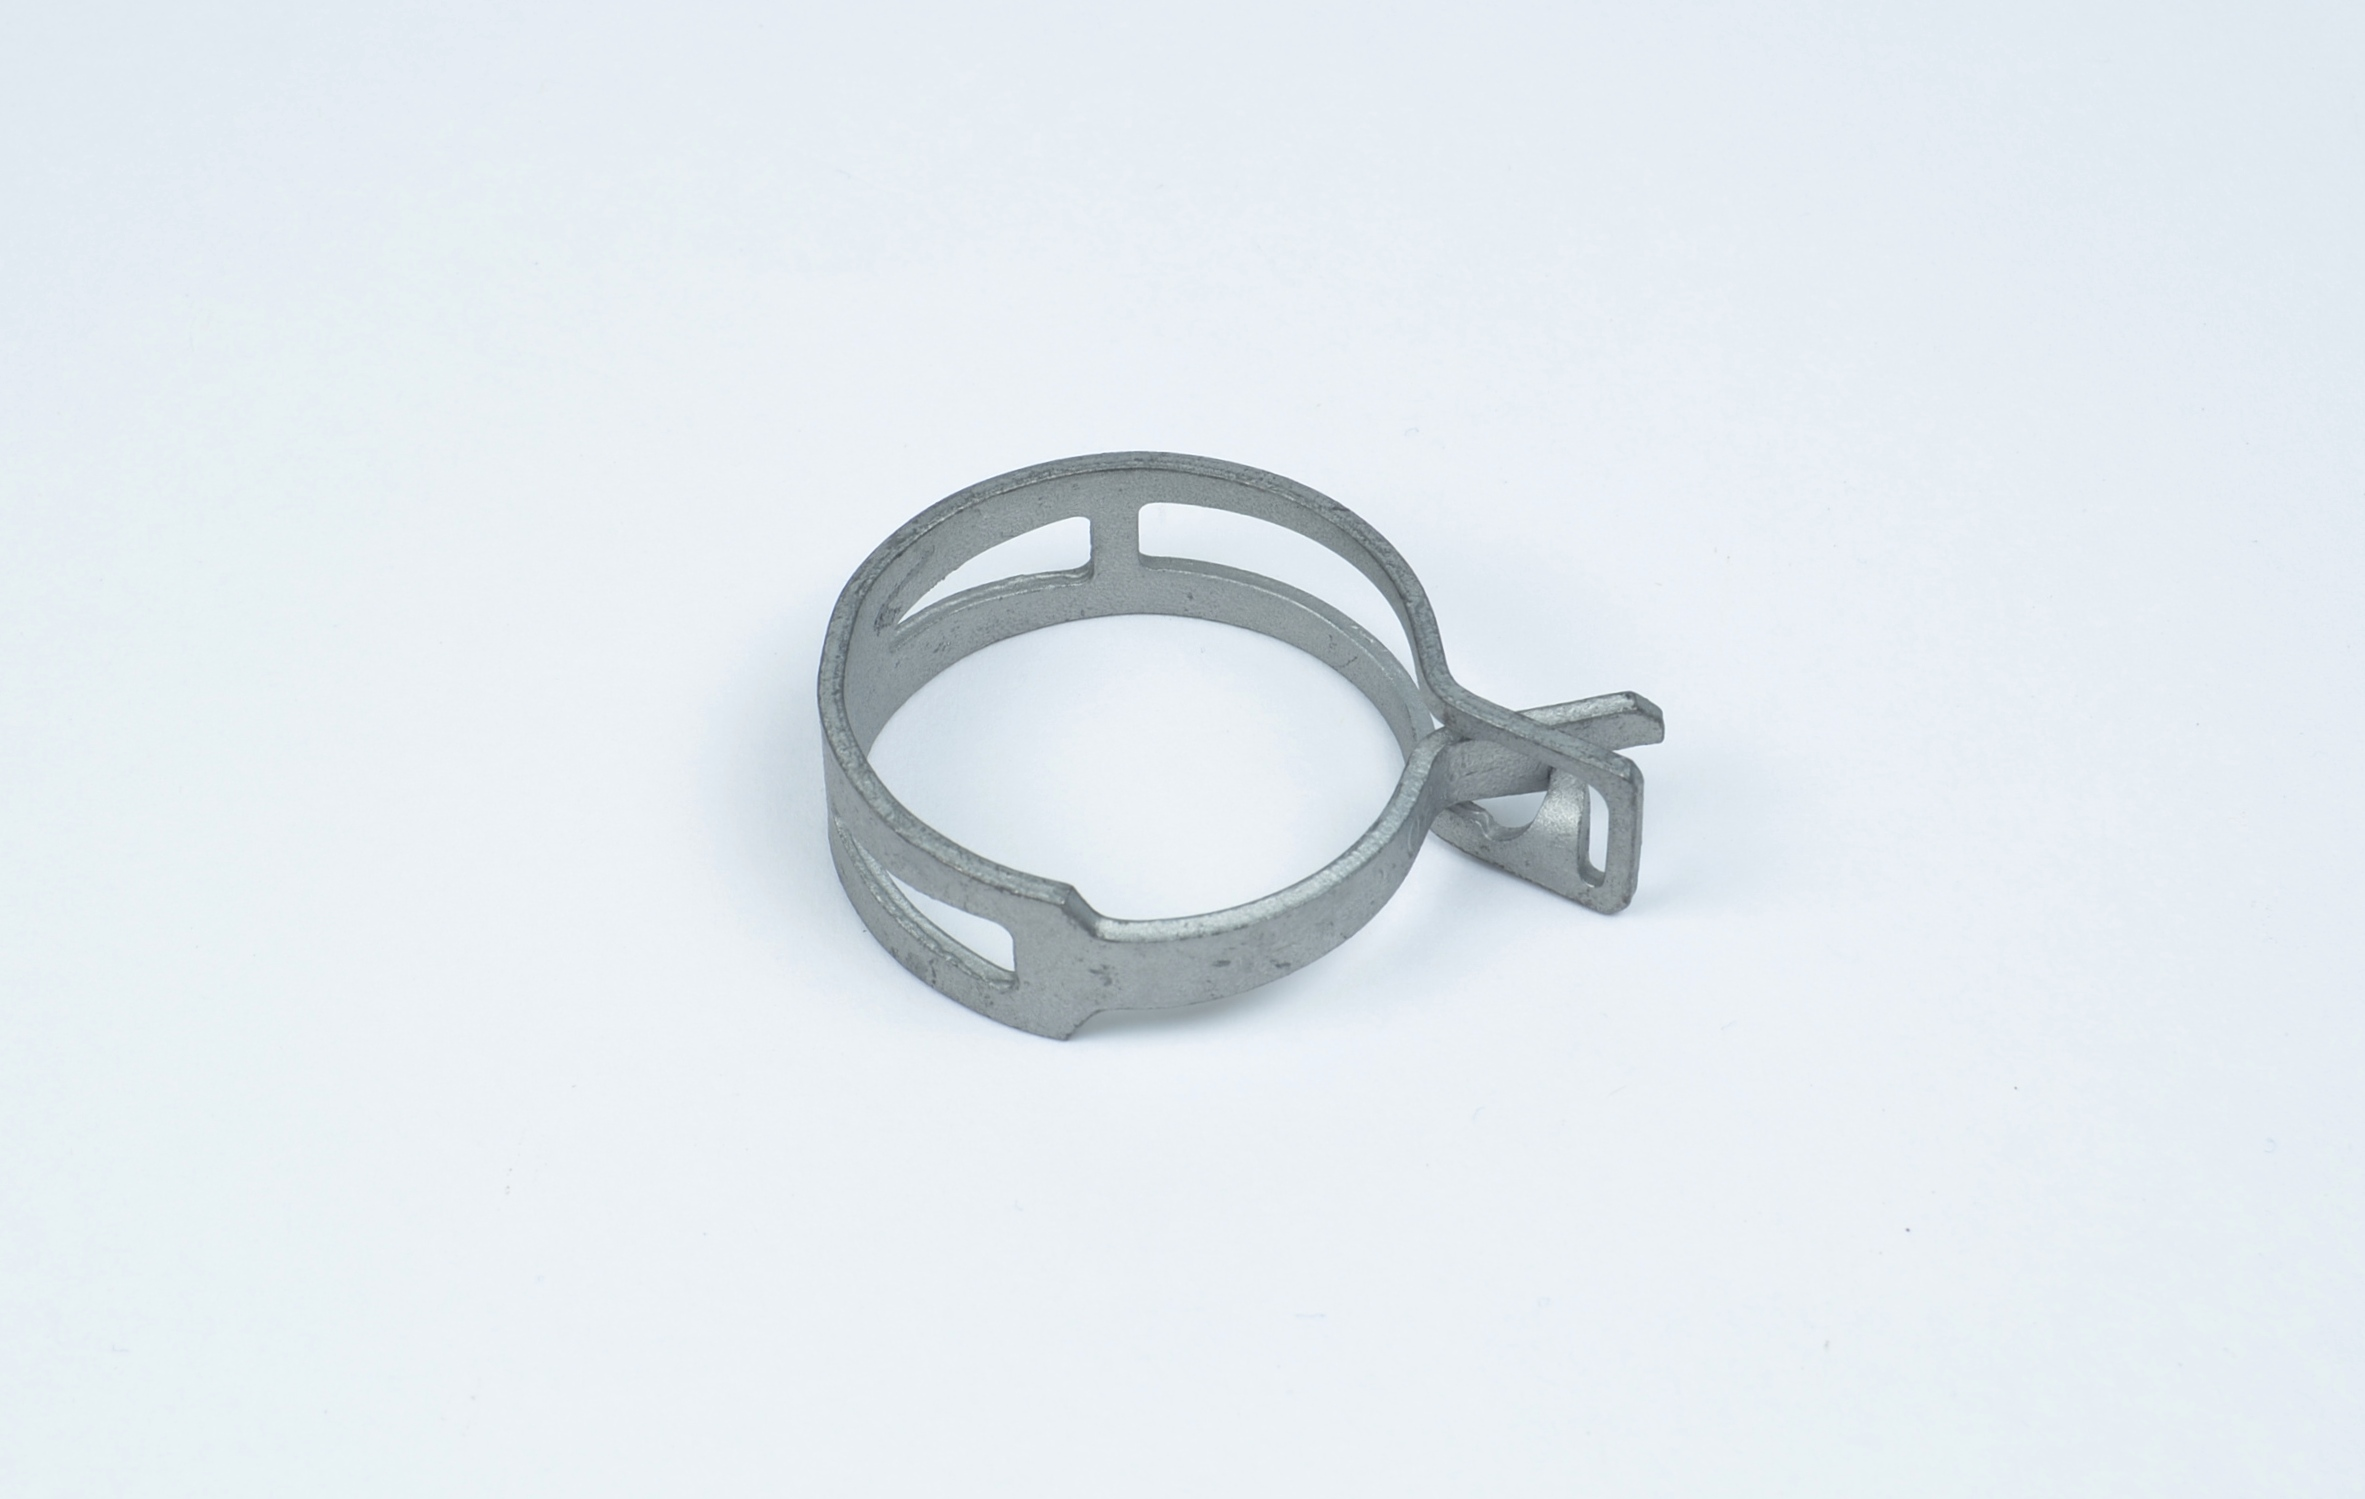 BYPASS HOSE CLAMP